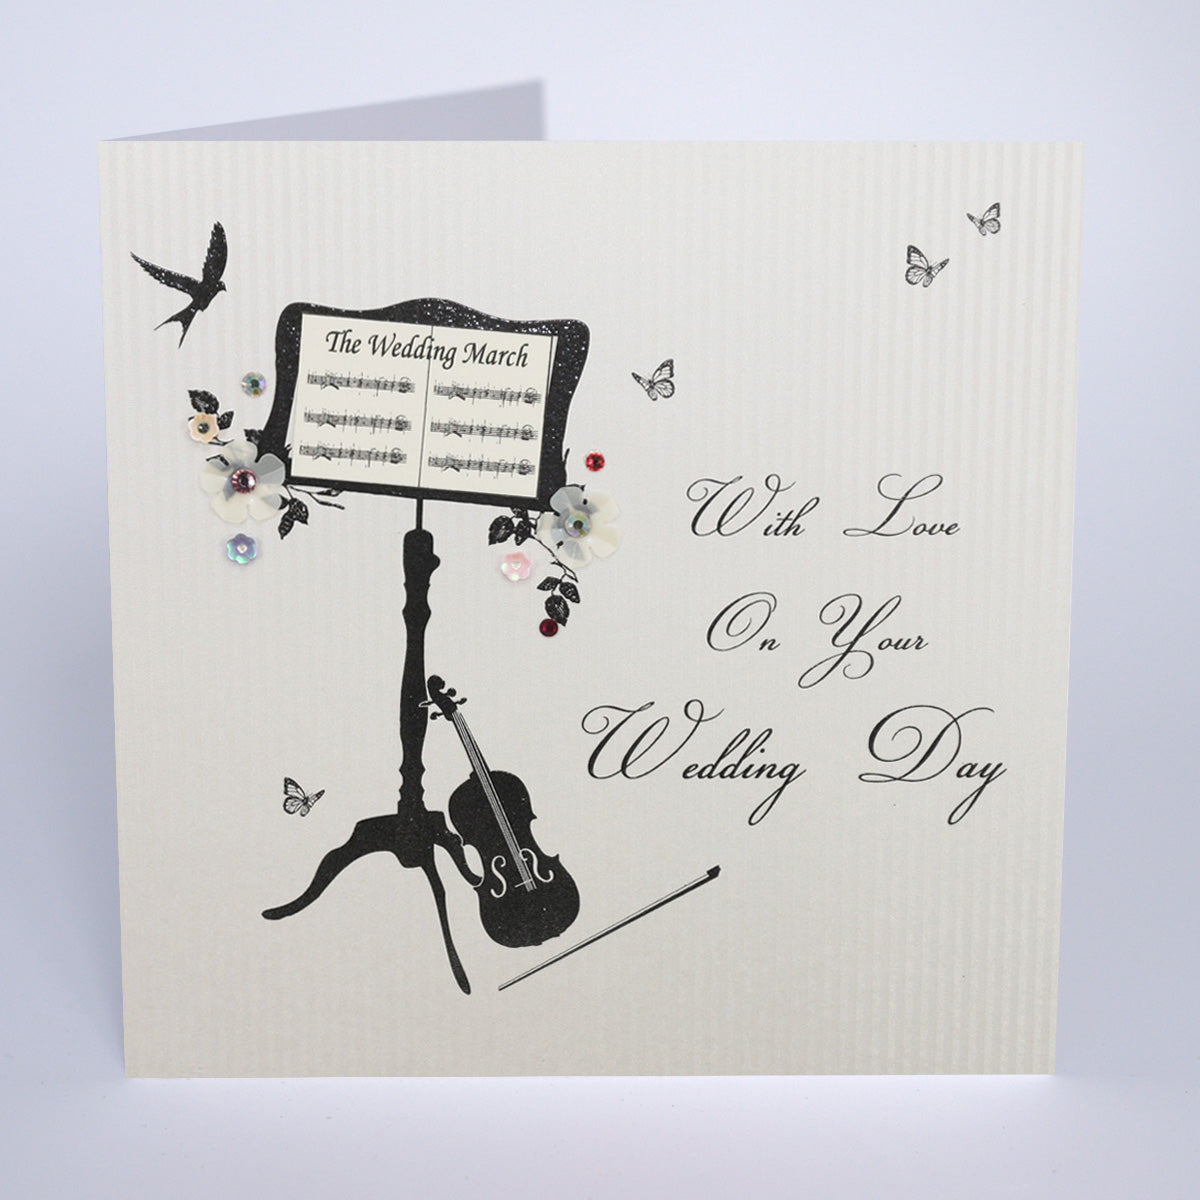 With Love On Your Wedding Day (Violin)